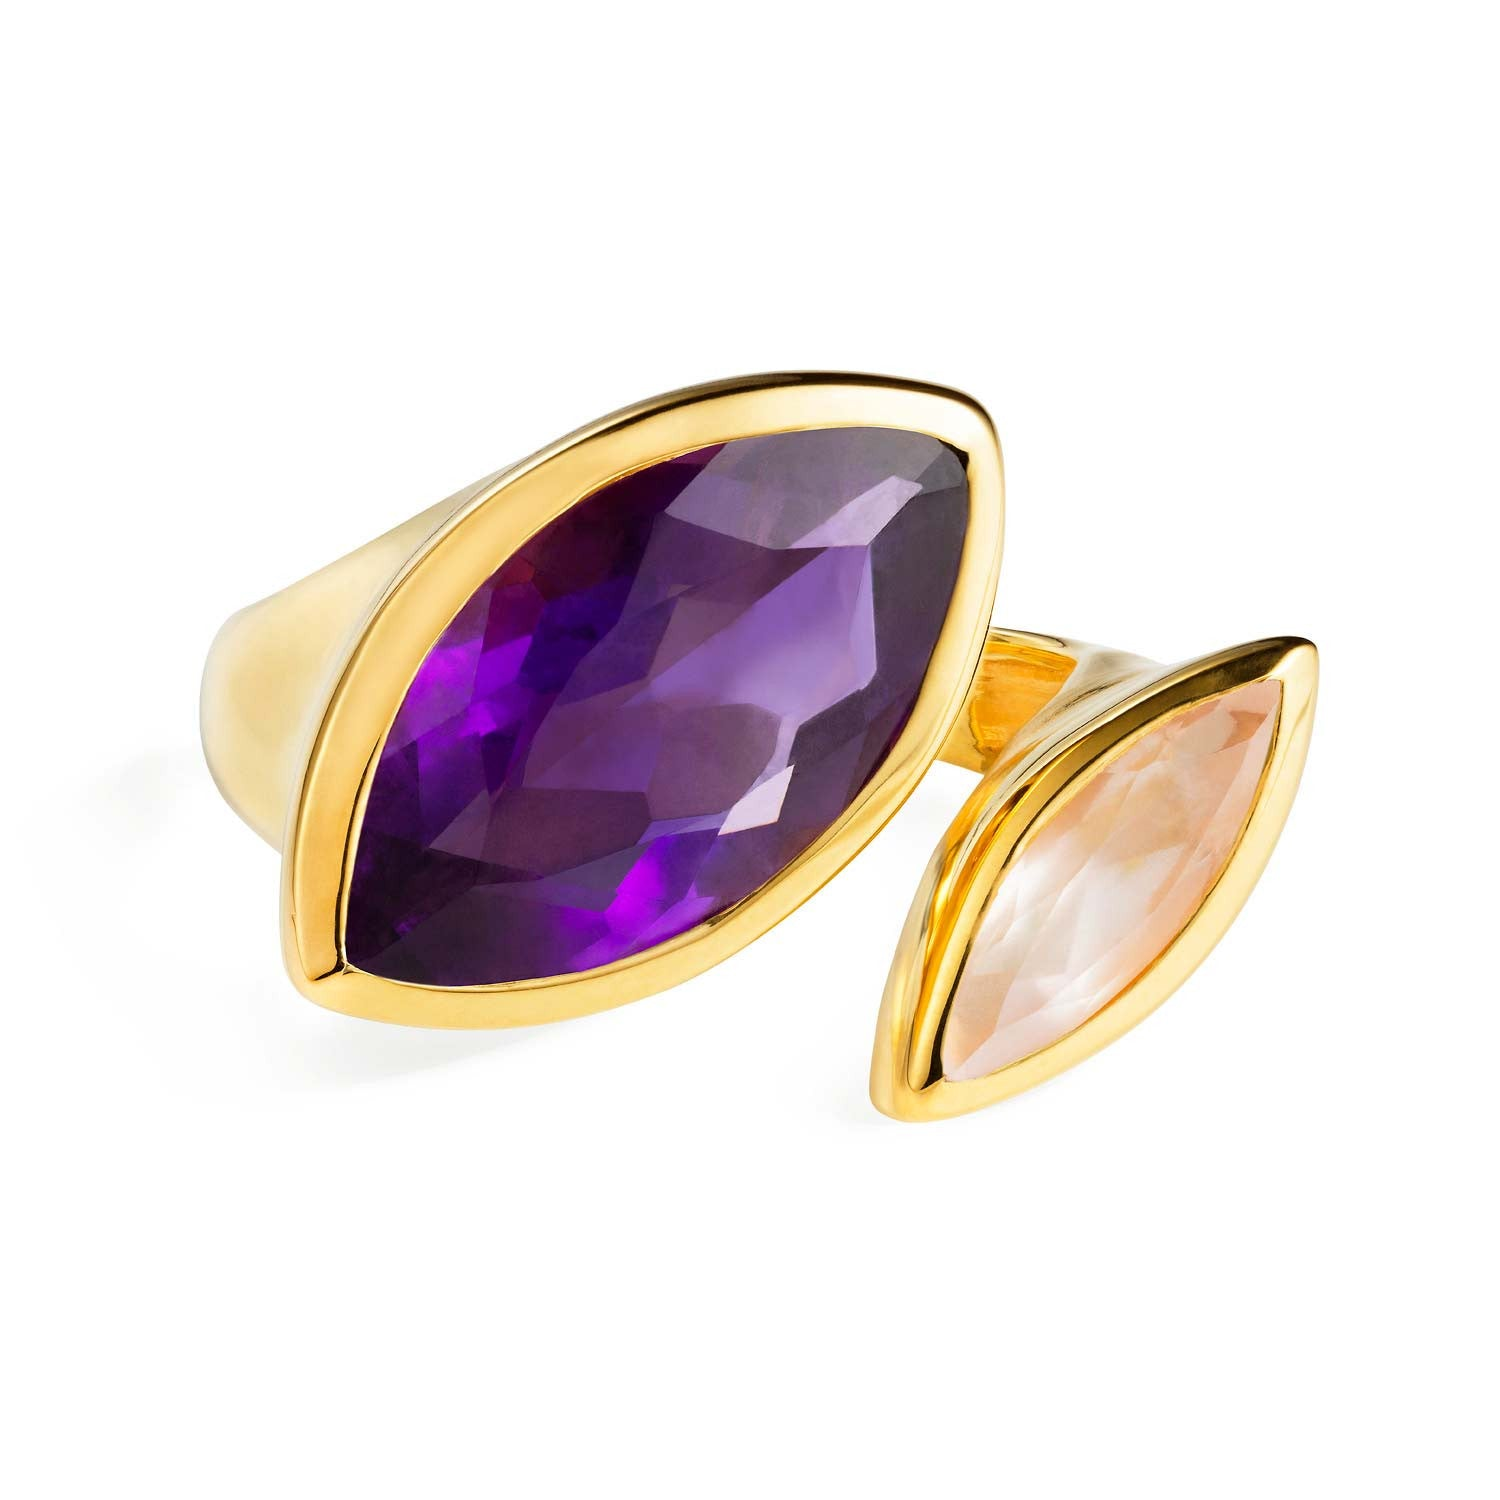 Celestine Gold Cocktail Ring with Purple Amethyst and Rose Quartz